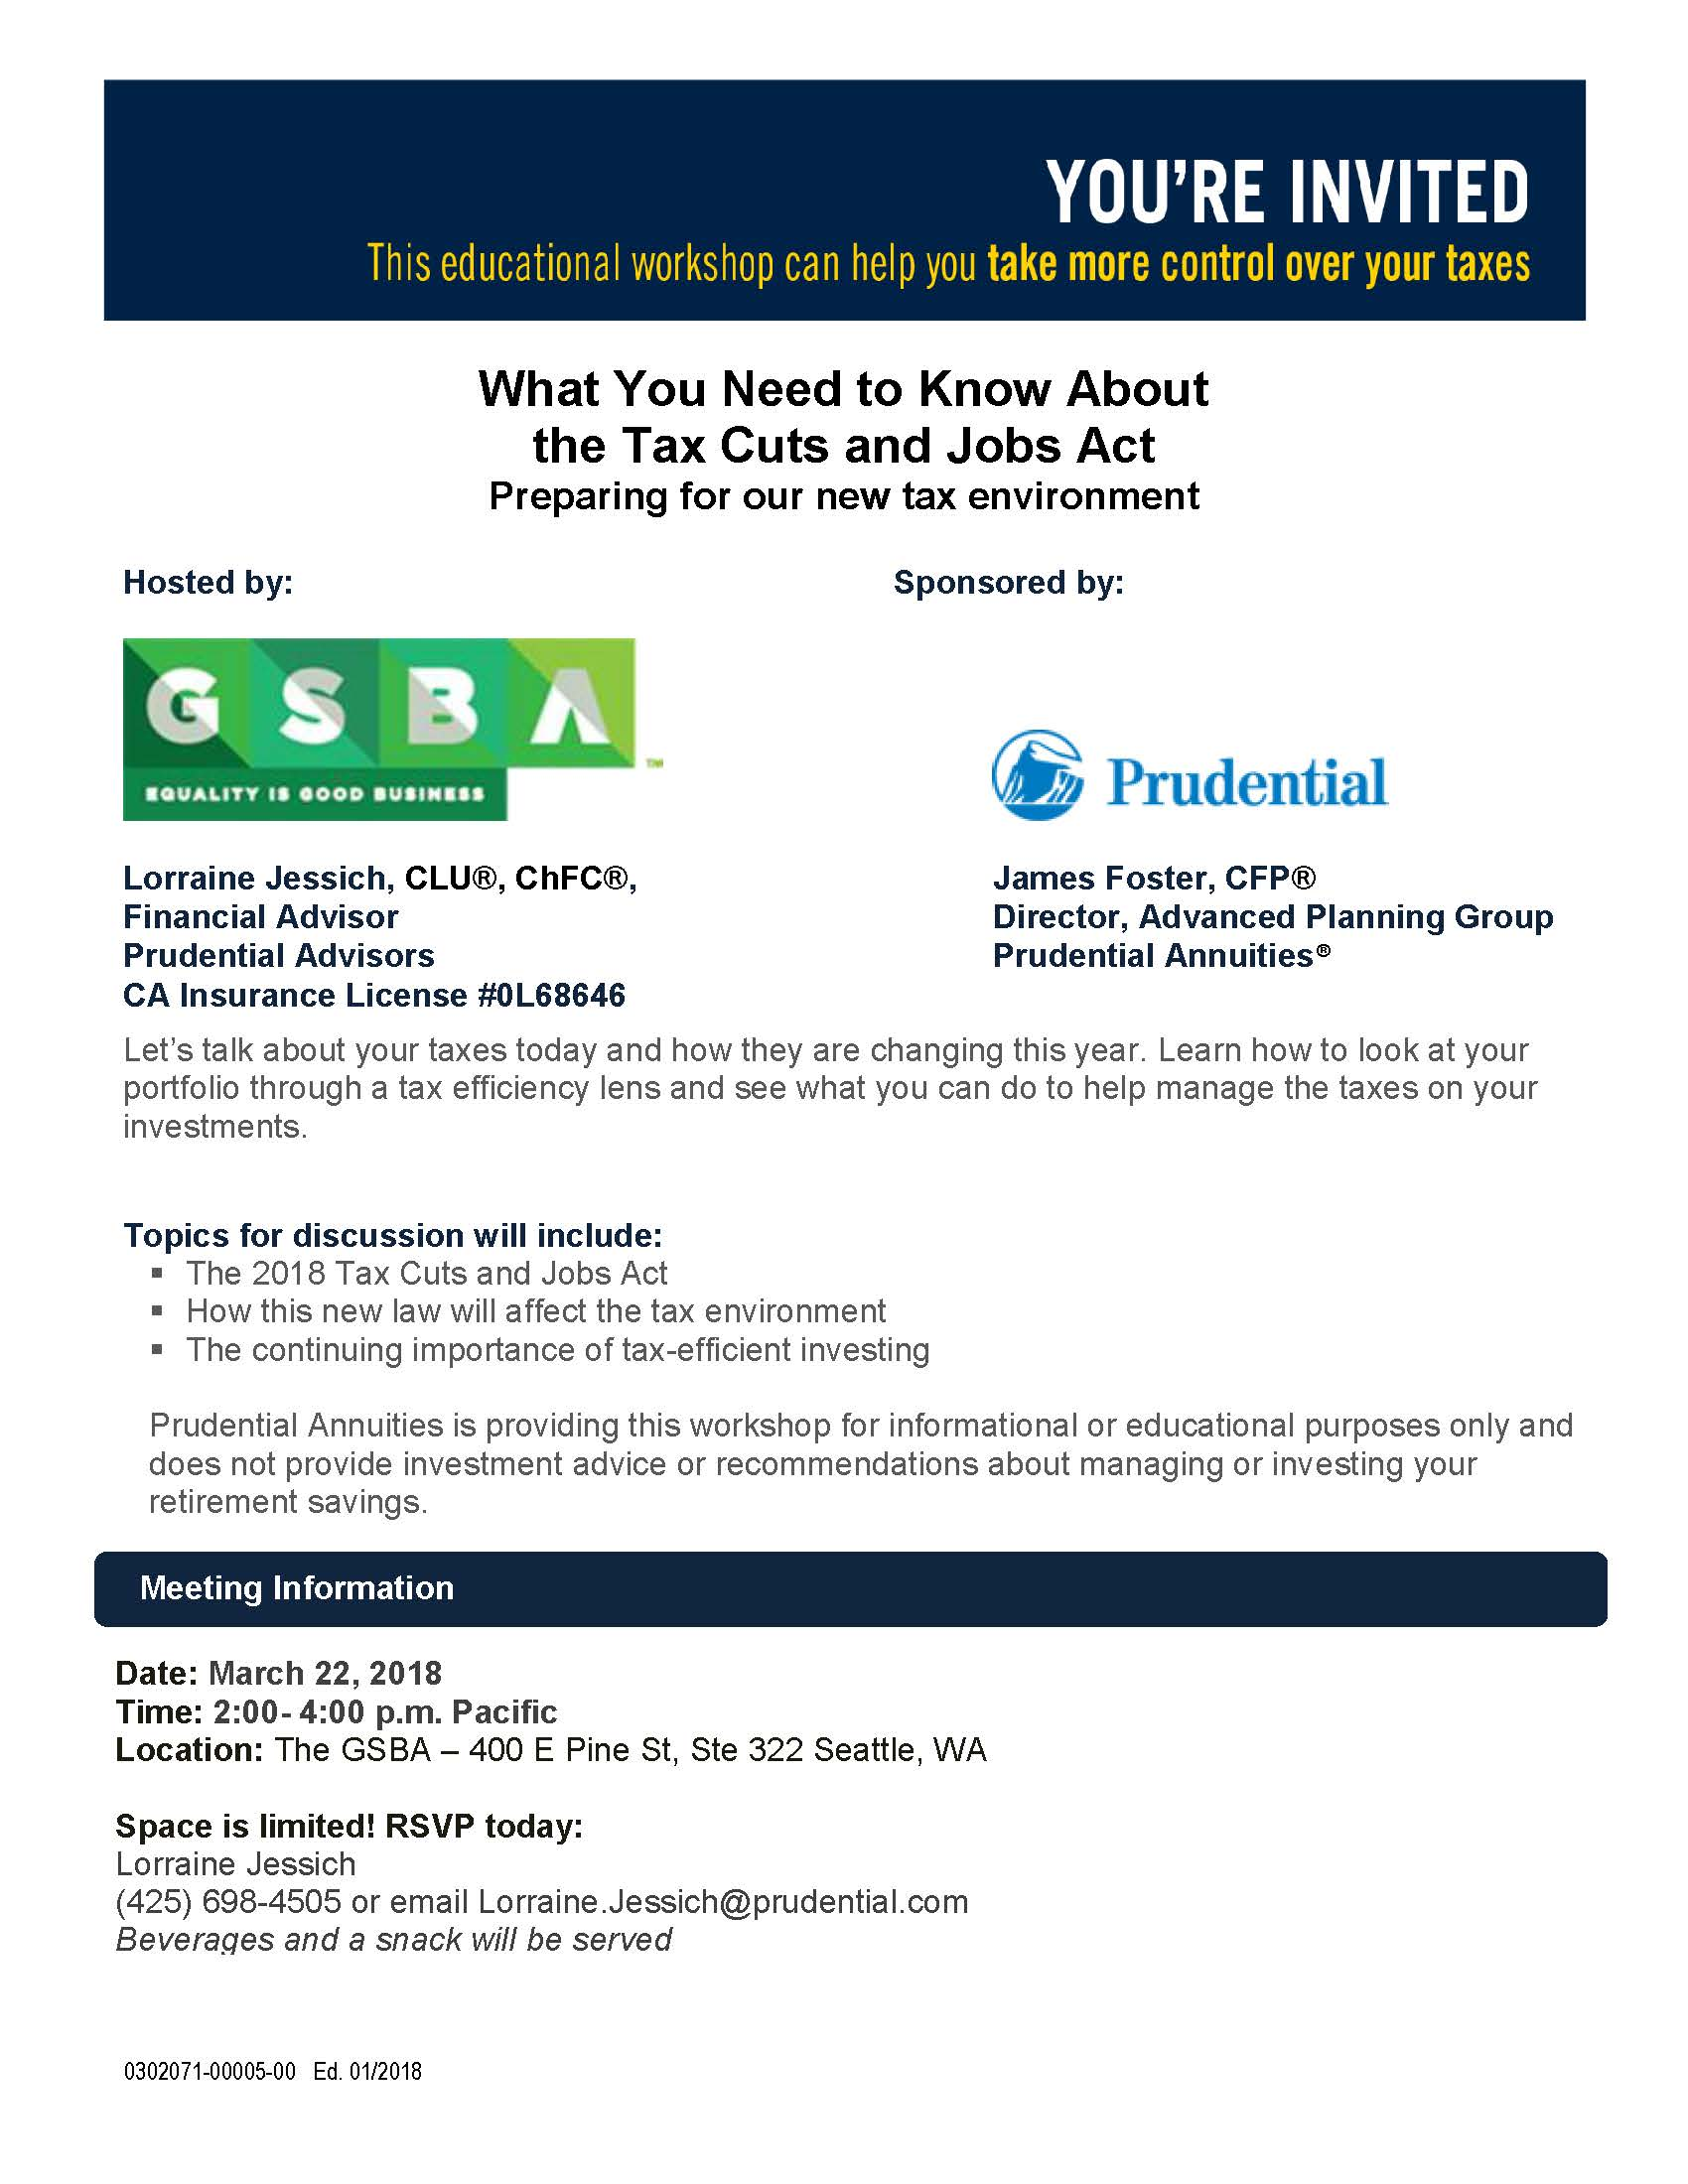 What You Need to Know About the Tax Cuts and Jobs Act Invite - GSBA_Page_1